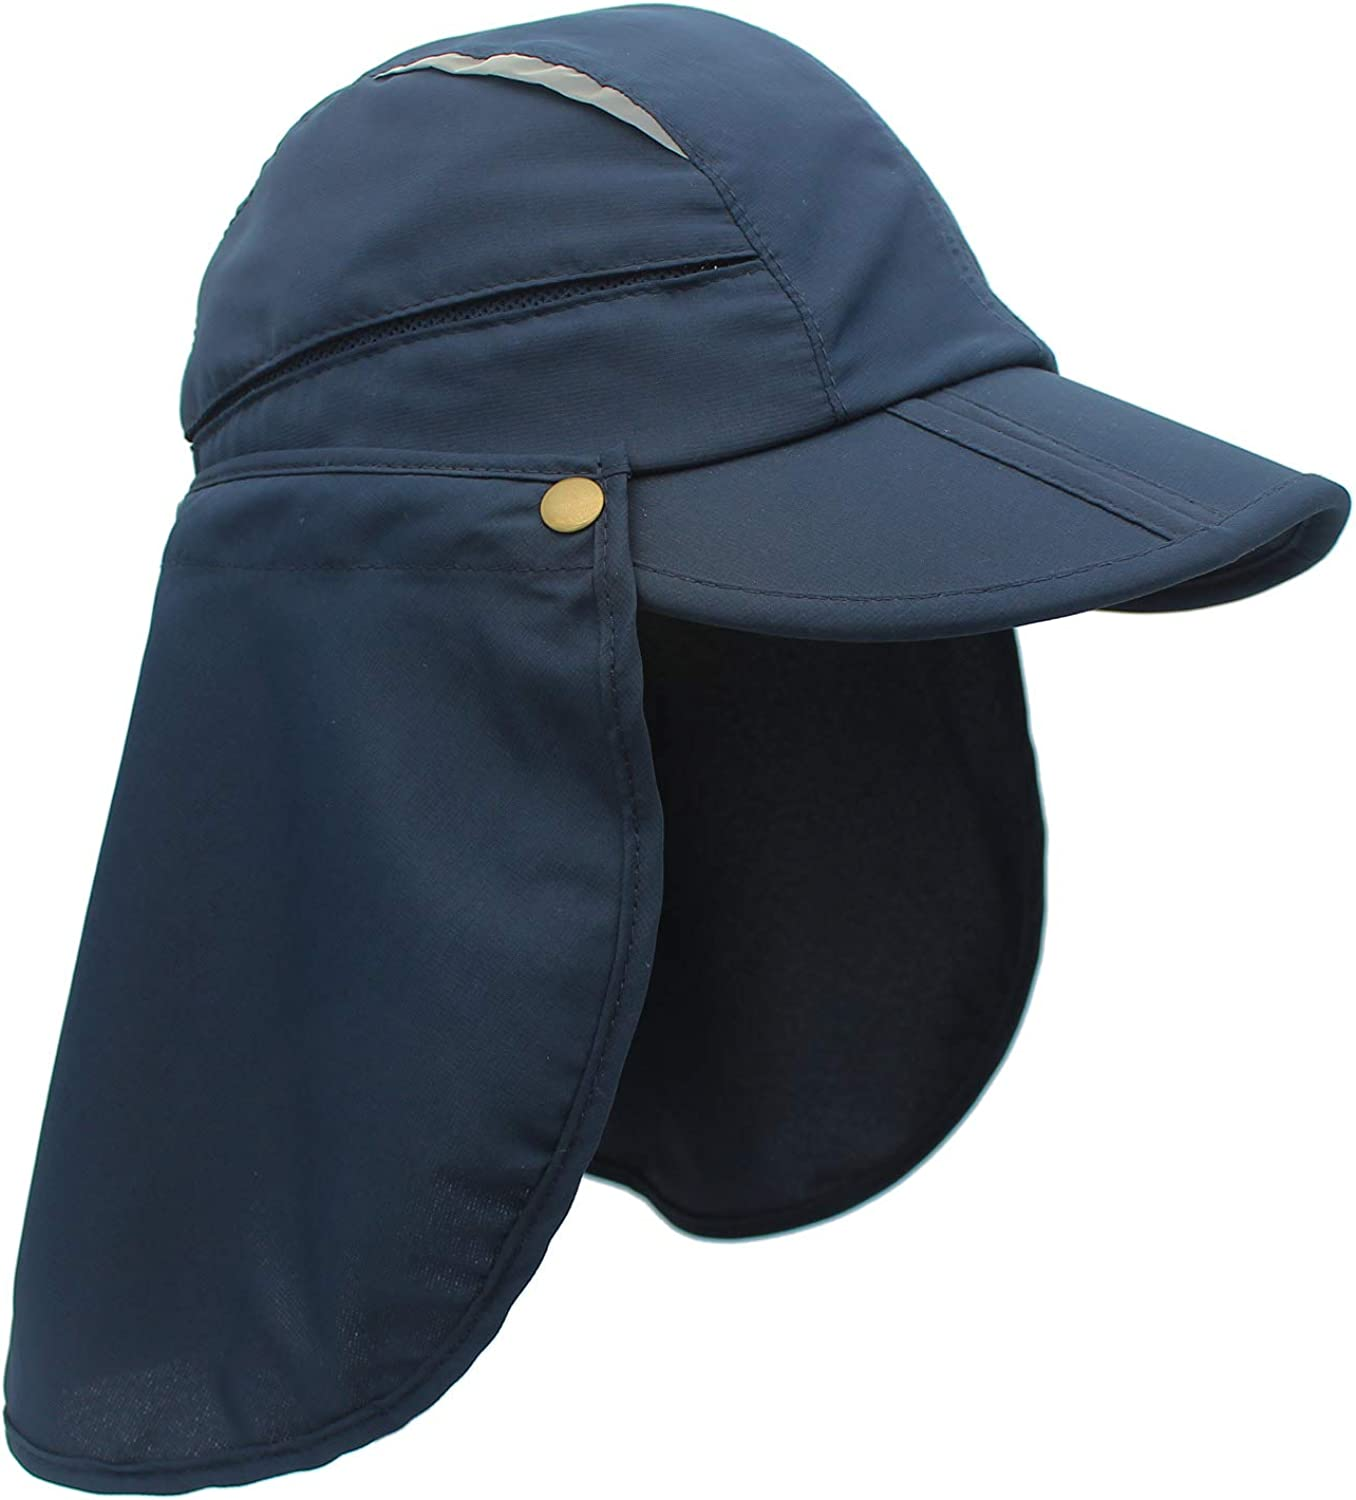 Home Prefer Boys UPF 50+ Sun Protection Cap Quick Dry Fishing Hat with Neck Flap